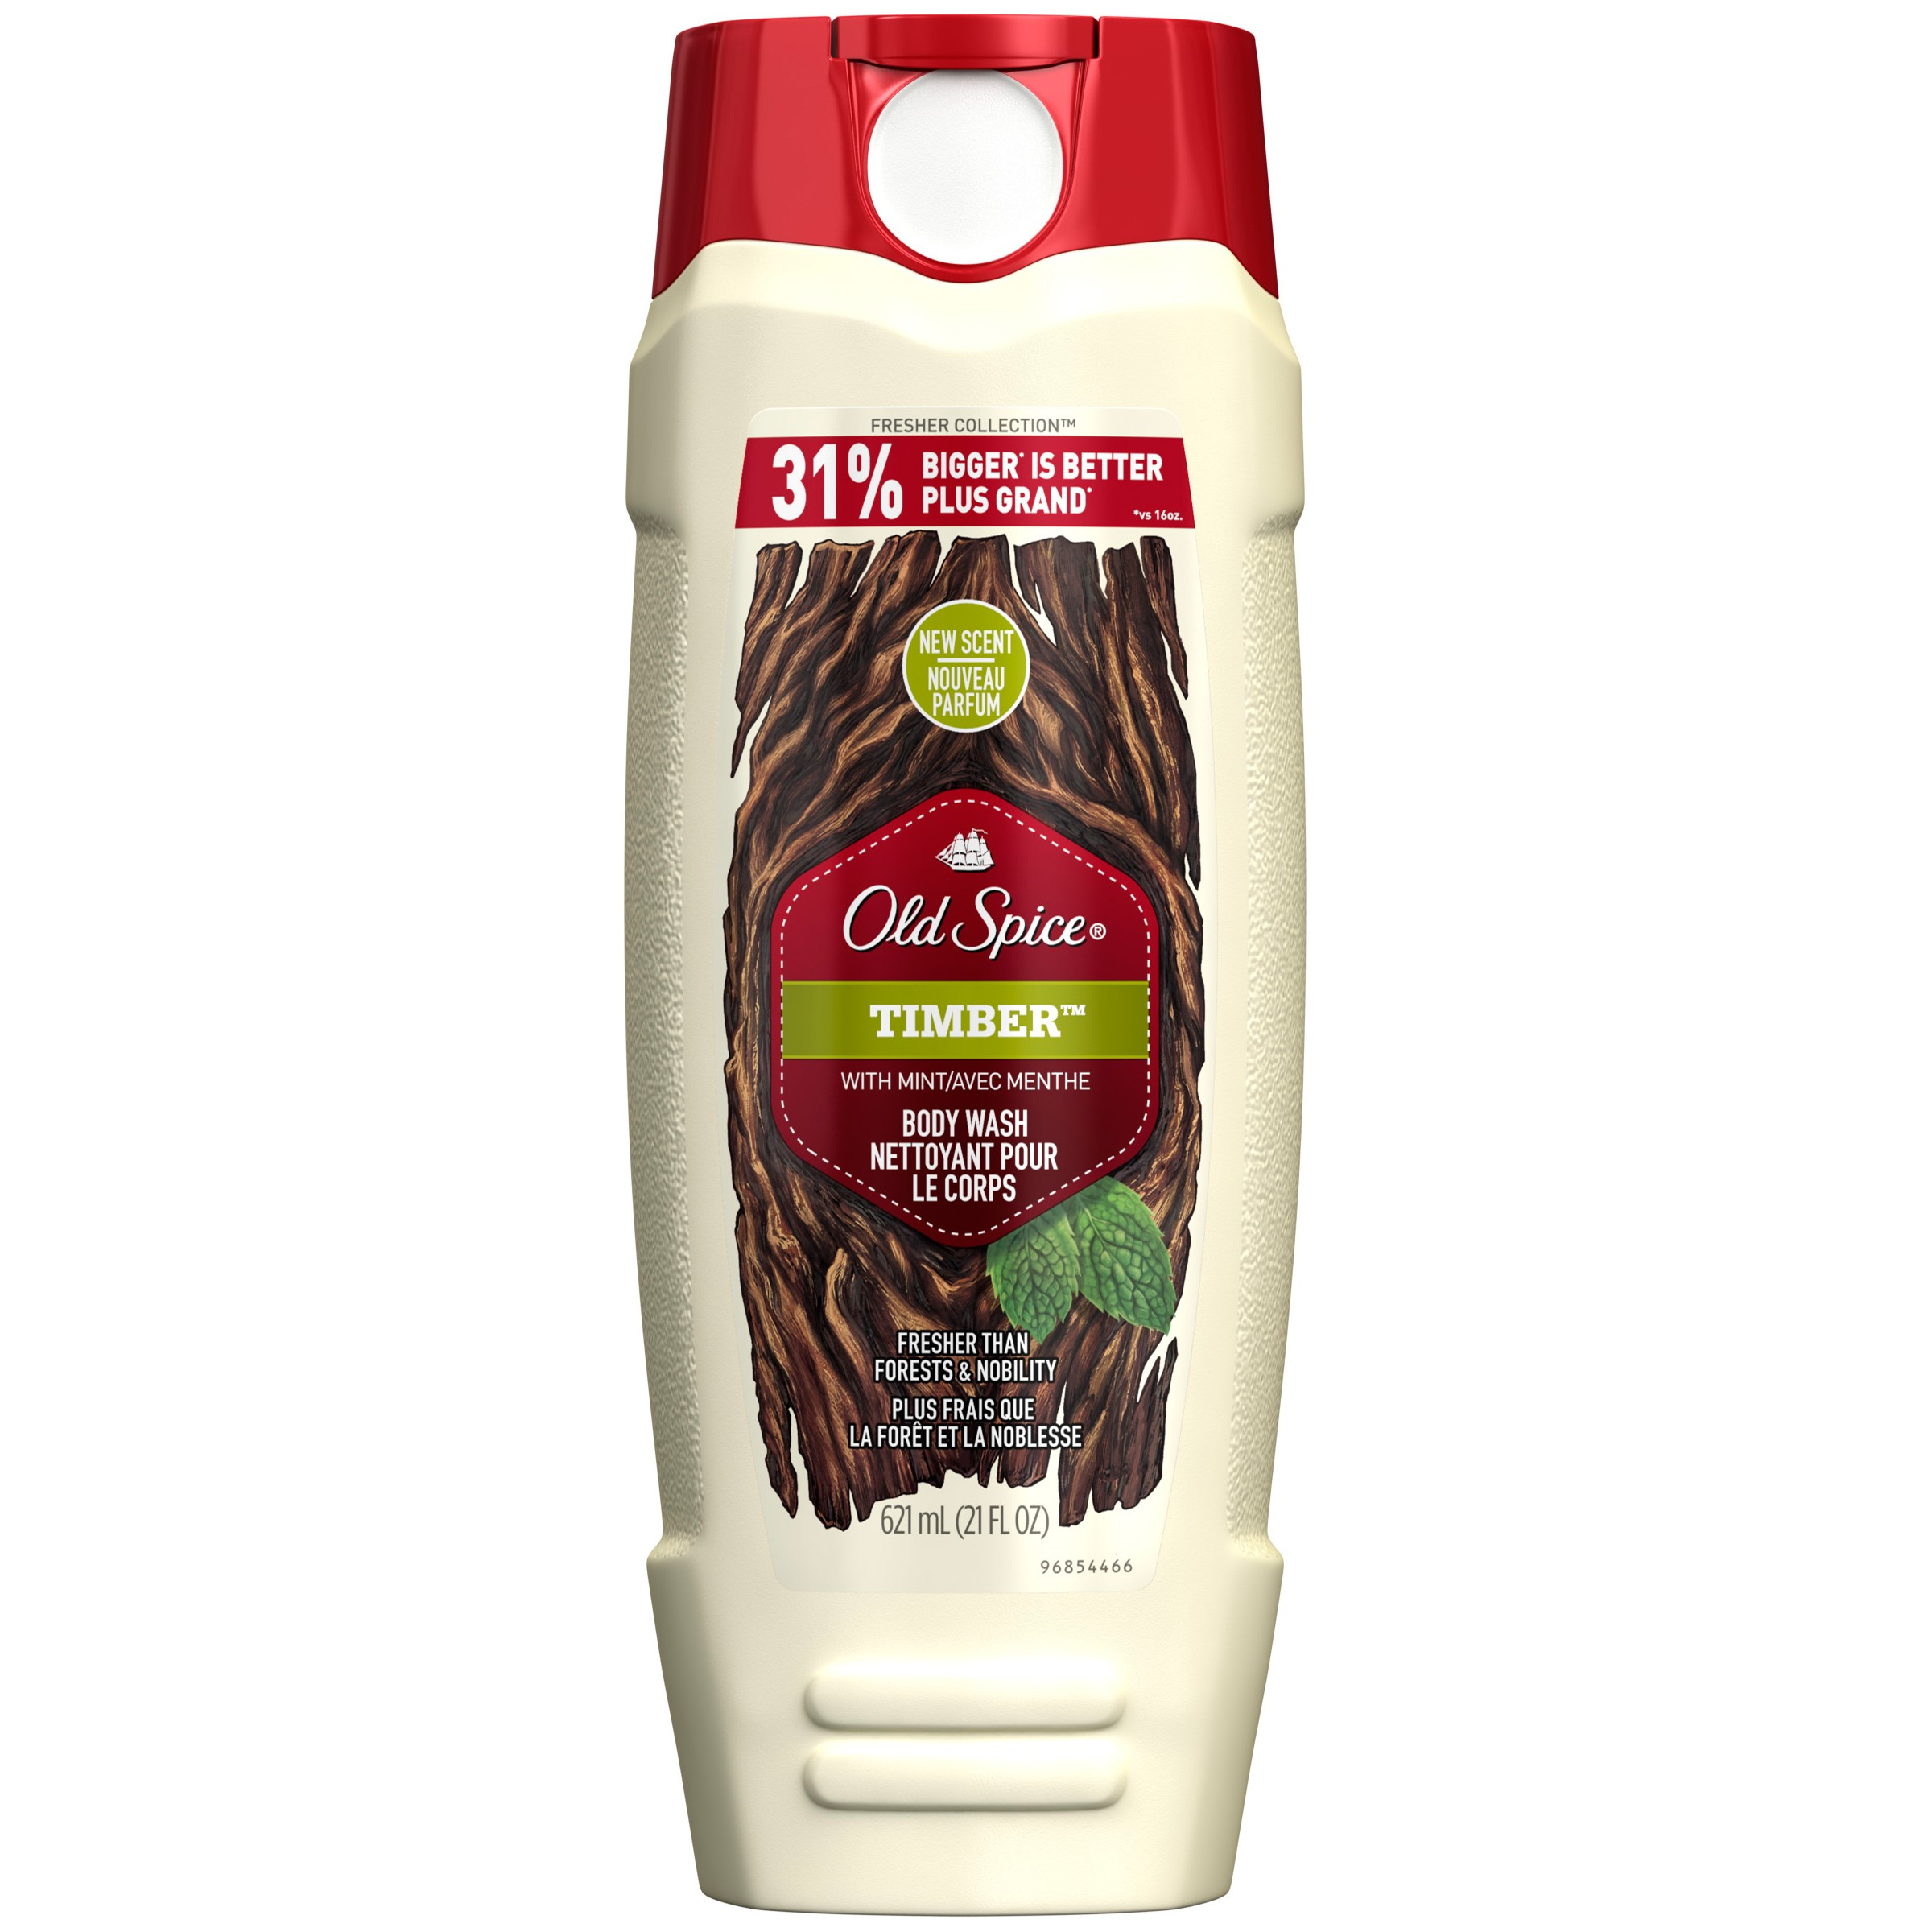 Old Spice Fresher Men?s Body Wash, Timber, 21 Oz